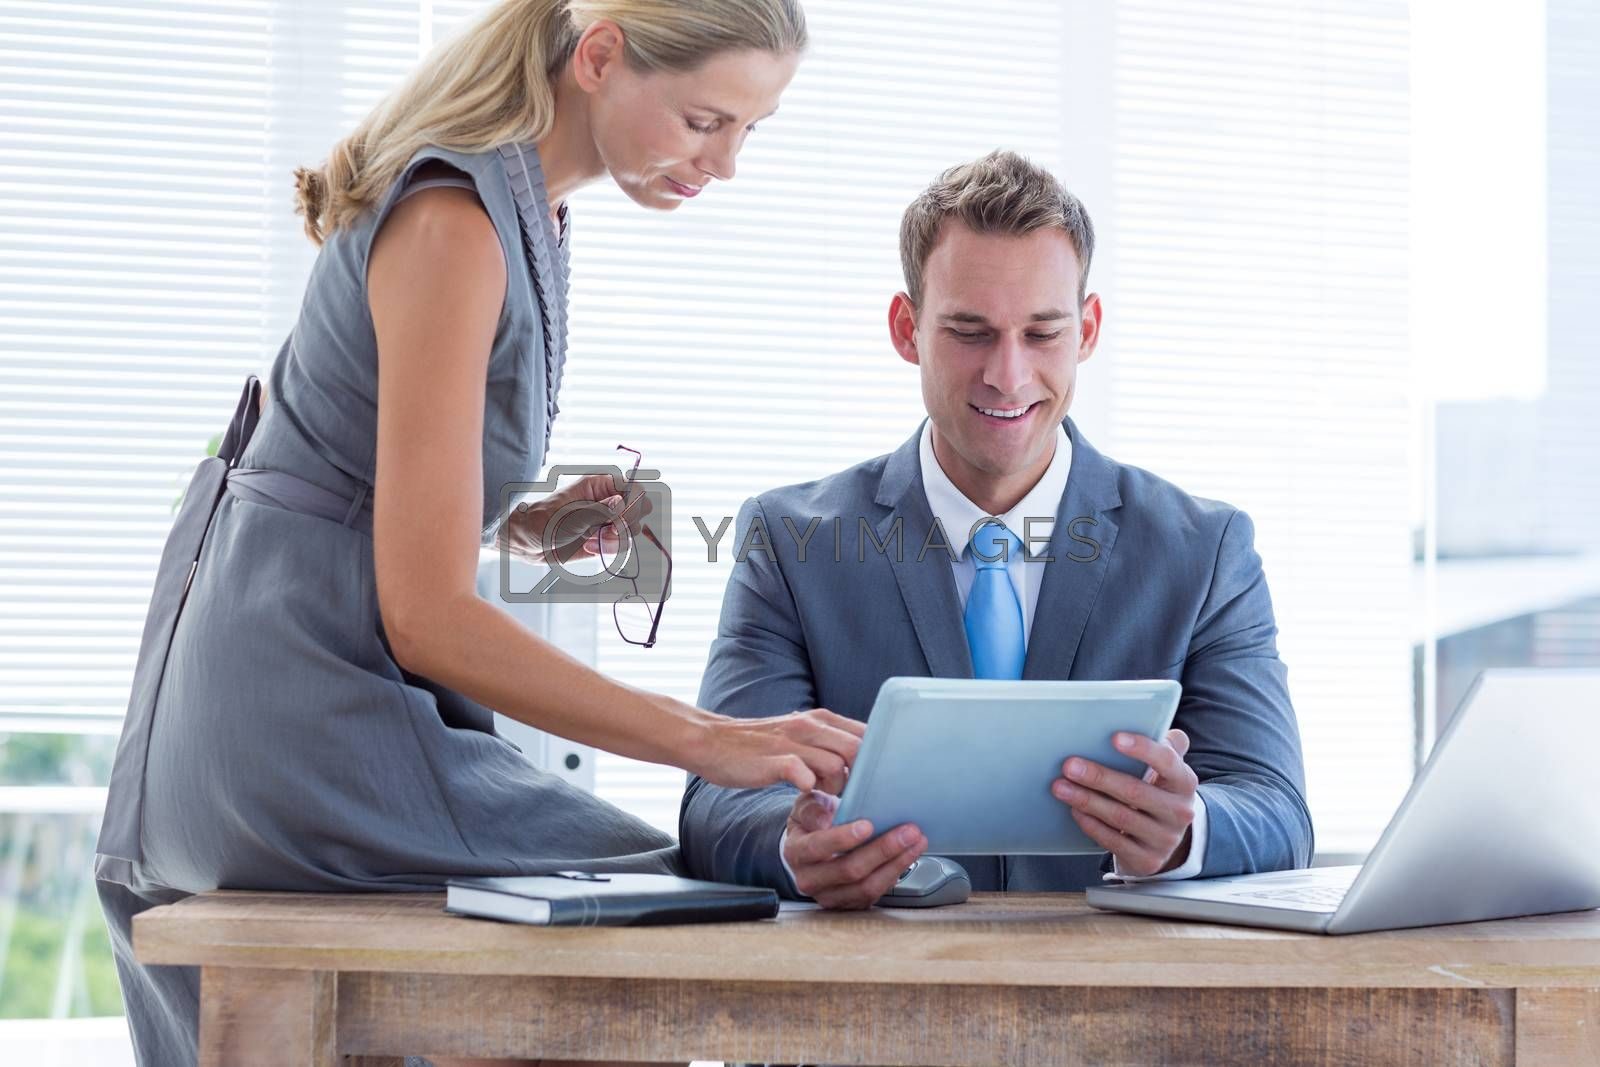 Royalty free image of Happy colleagues working together on tablet by Wavebreakmedia